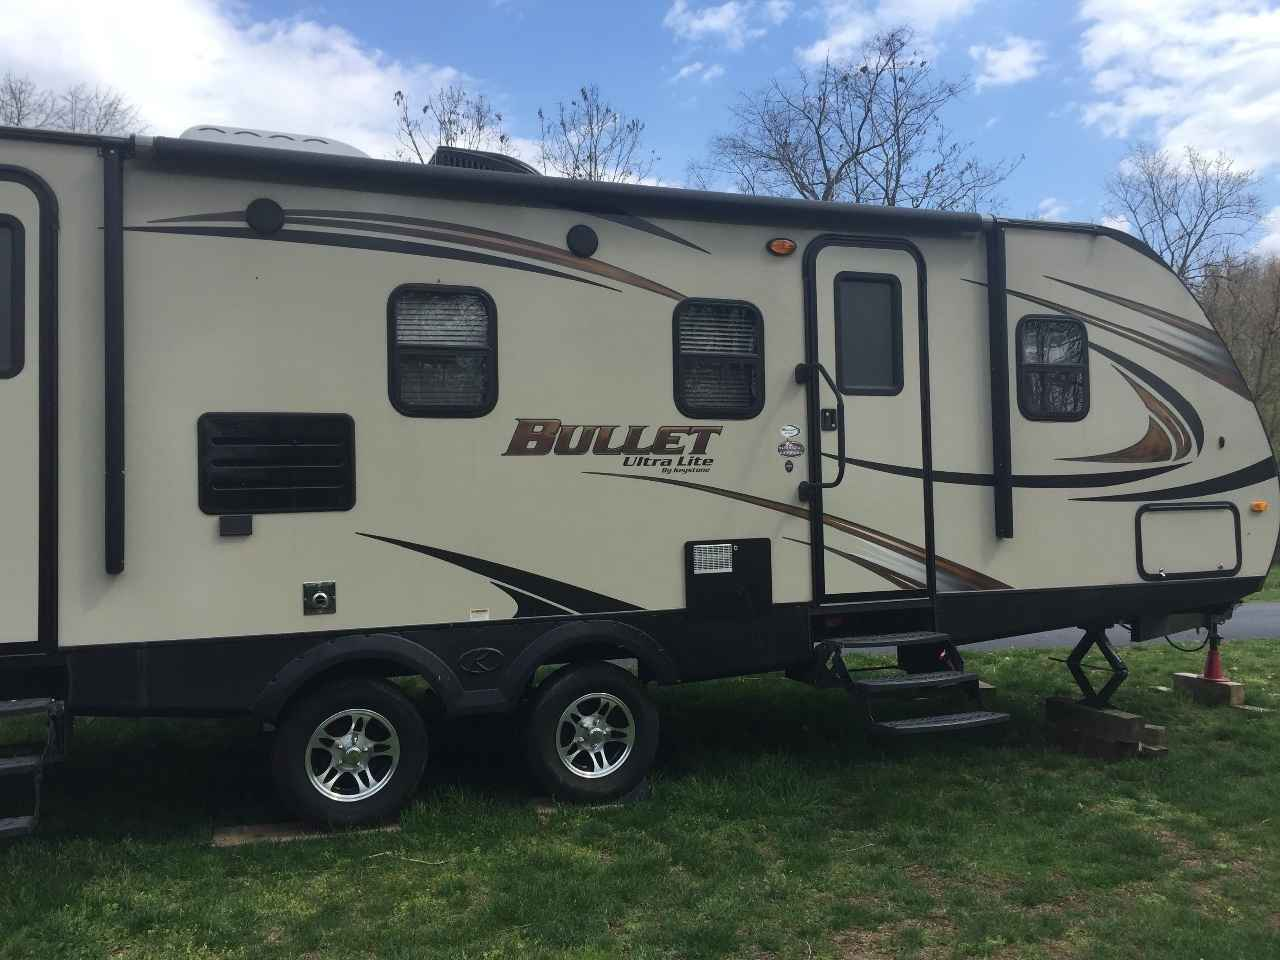 Toyota Dealers Pa >> 2014 Used Keystone BULLET ULTRA LITE Travel Trailer in Pennsylvania PA